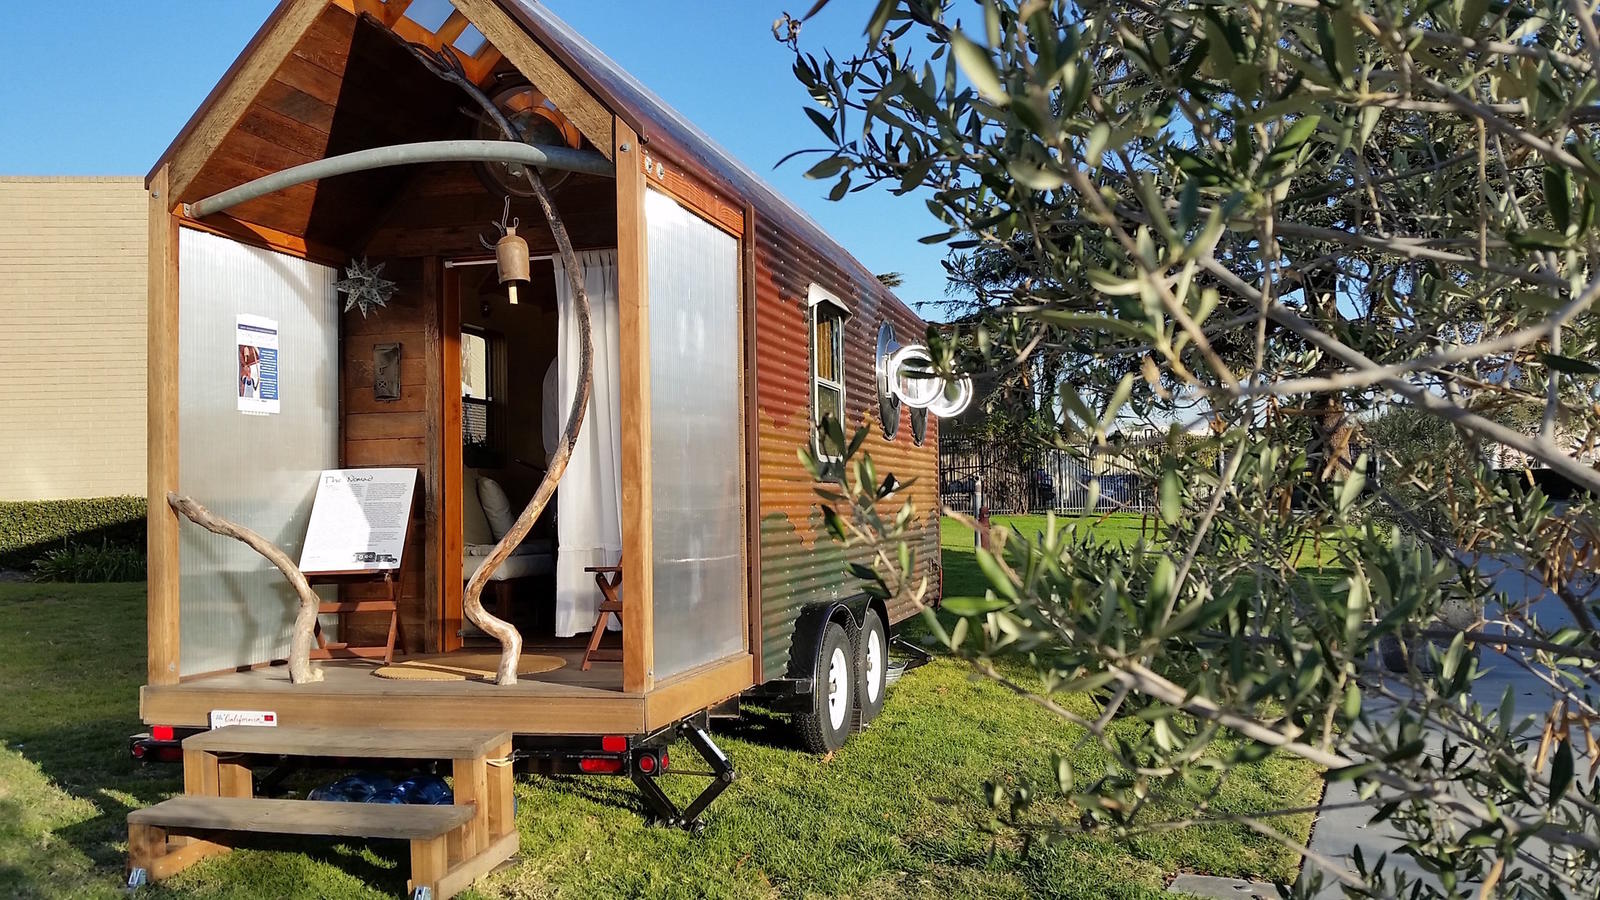 Tiny house town the nomad tiny house 100 sq ft 100 square feet house